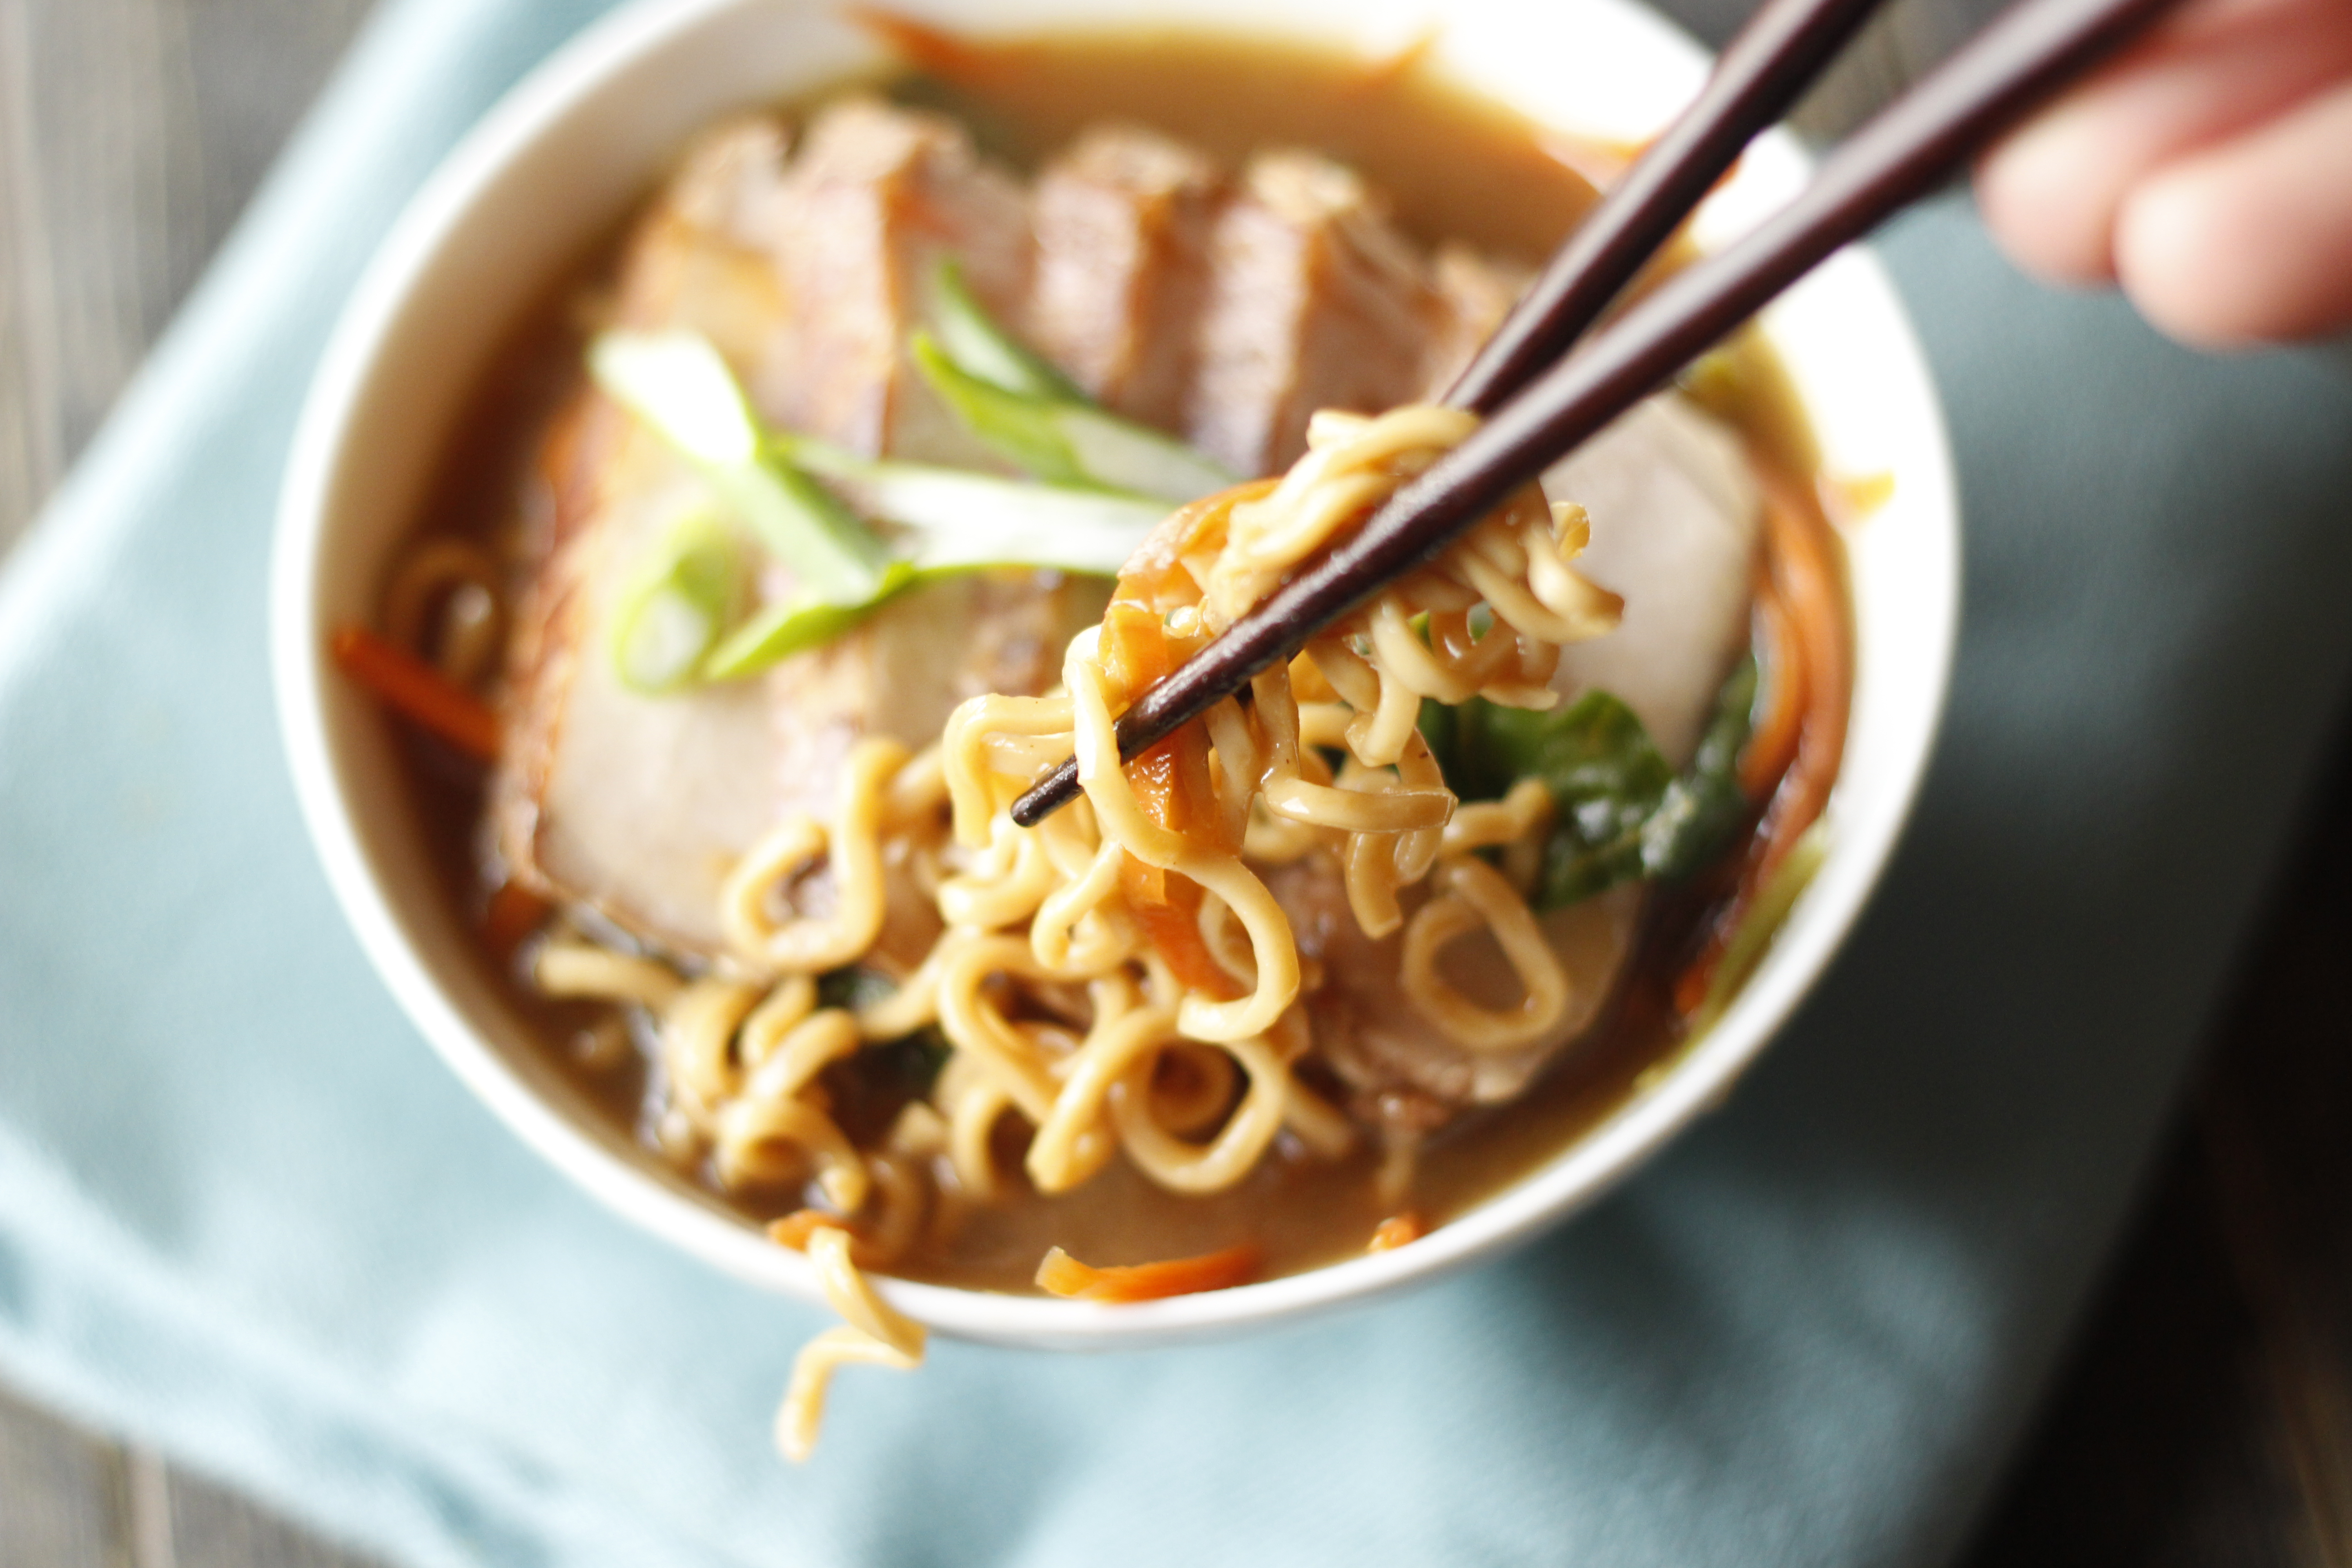 ramen noodles business essay Samurai noodle franchise licensing program samurai noodle is an authentic japanese ramen shop based in seattle, washington the company was established in 2006, and currently has three branches in seattle, and two licensed stores in houston, texas.